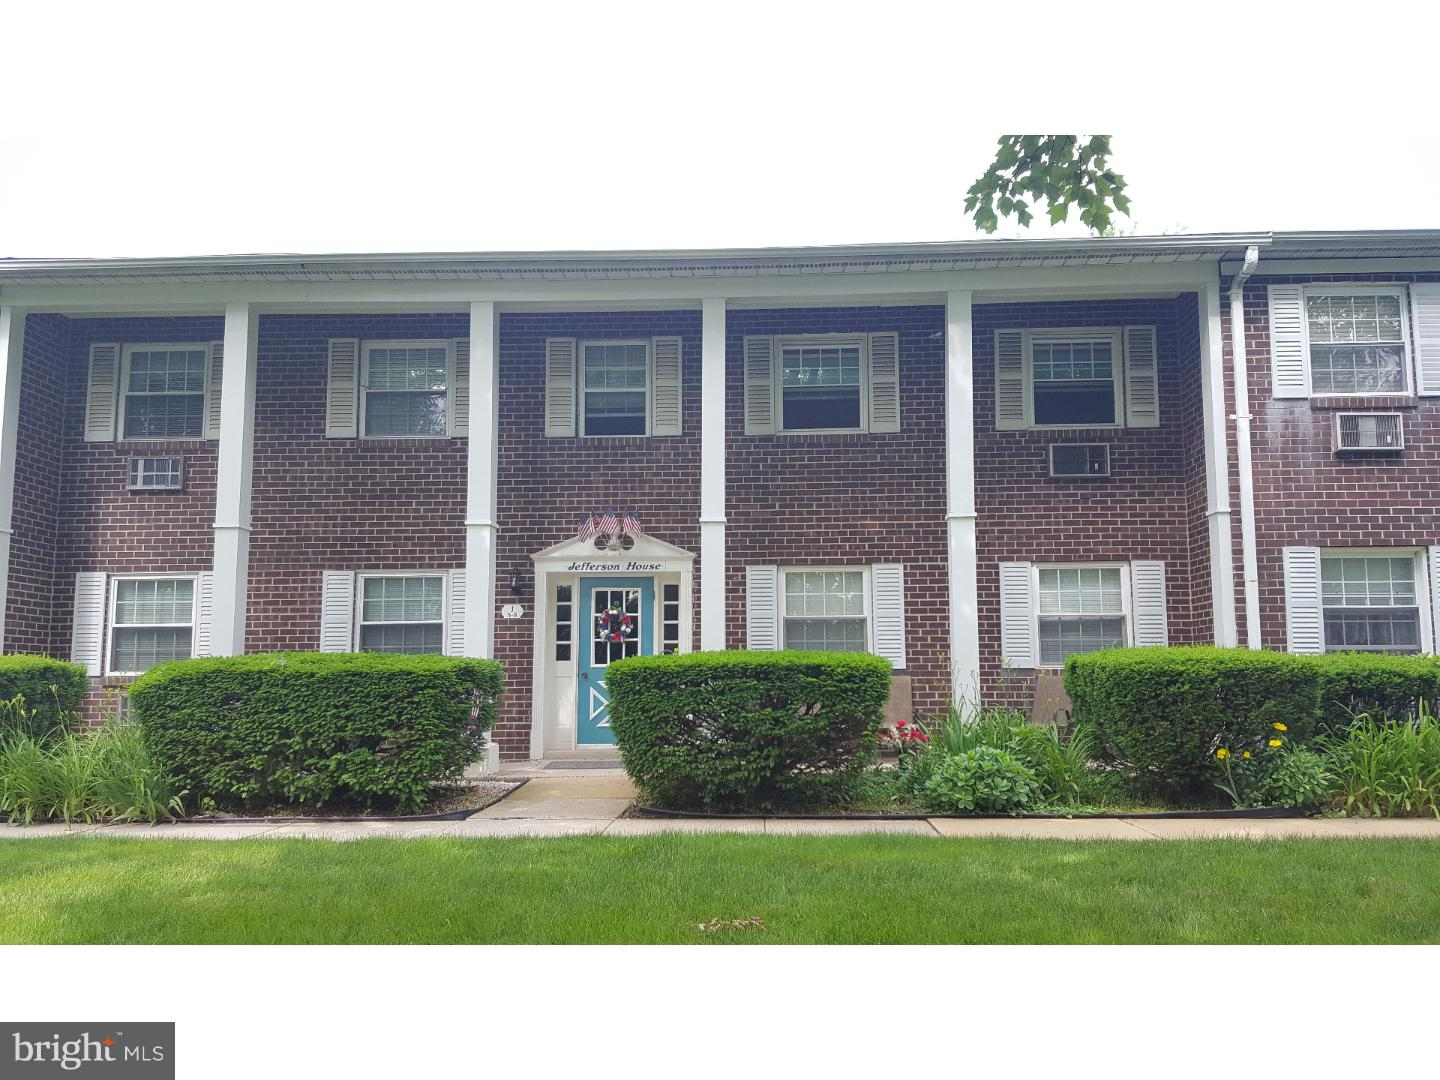 224 Pennell Rd J7, Aston, PA, 19014